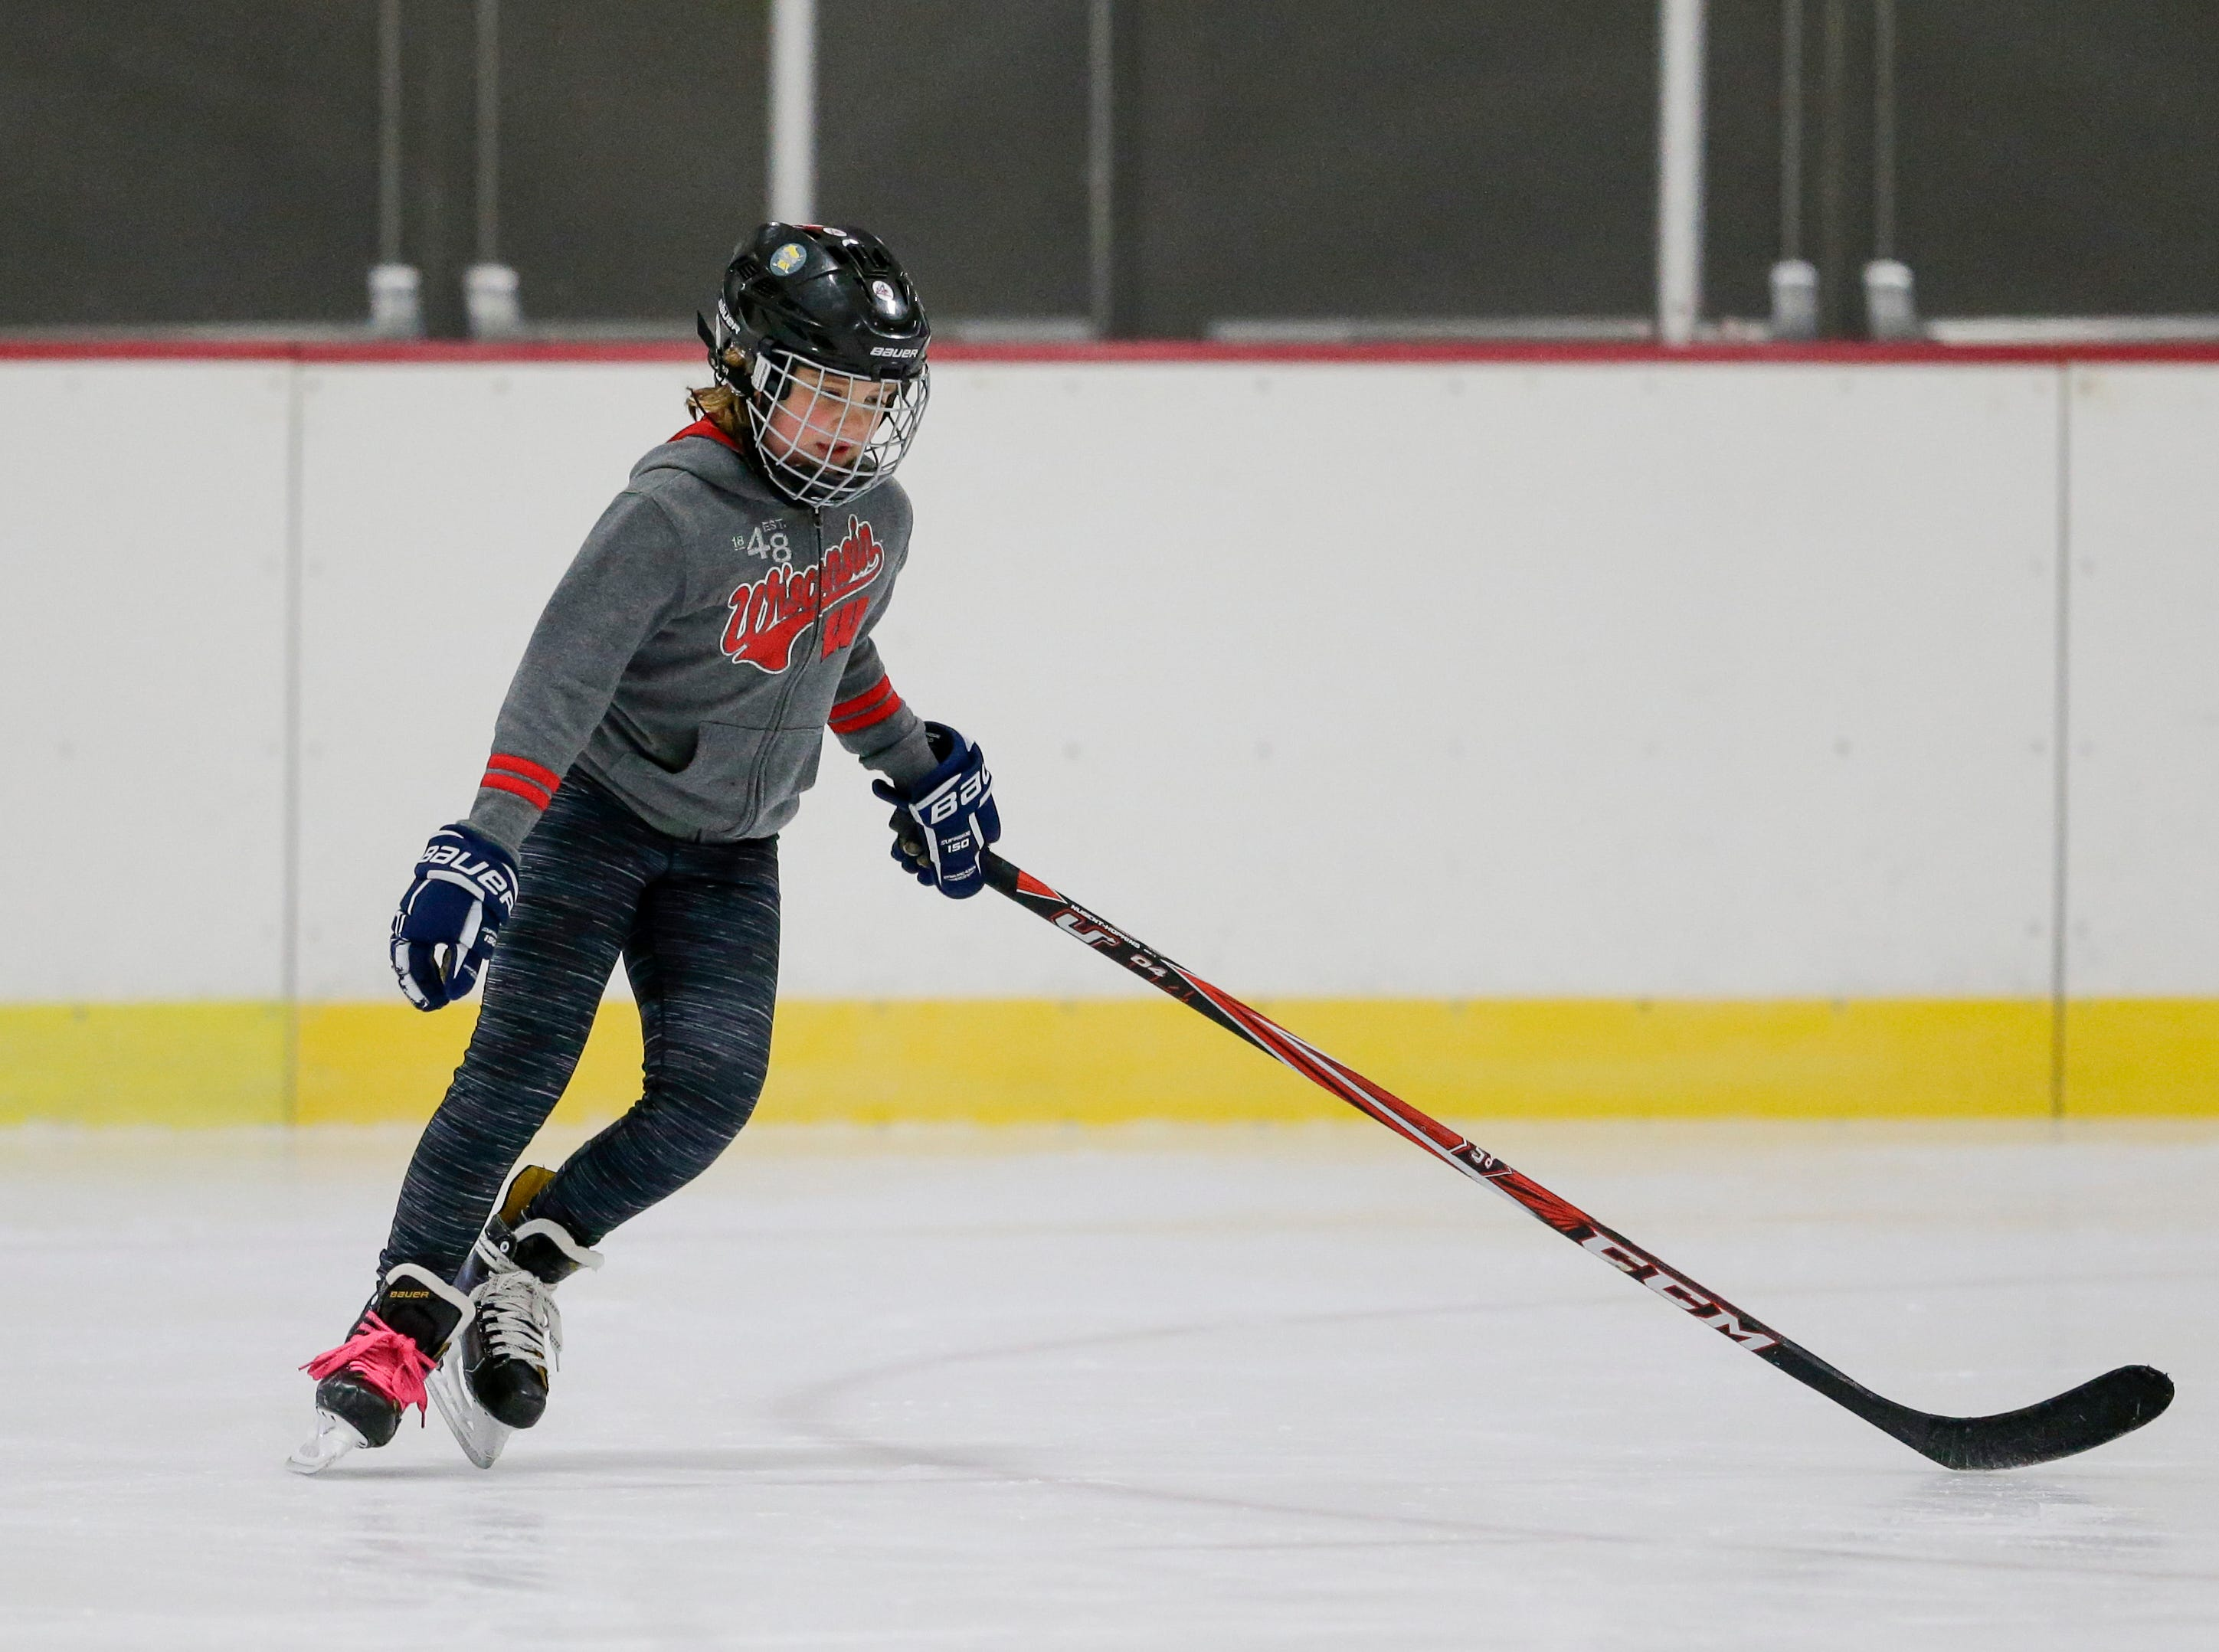 Amelia Suchomel, 9, skates during the Manitowoc County Youth Hockey Association's Girls Try Hockey event at the County Ice Center Saturday, October 13, 2018, in Manitowoc, Wis. Joshua Clark/USA TODAY NETWORK-Wisconsin